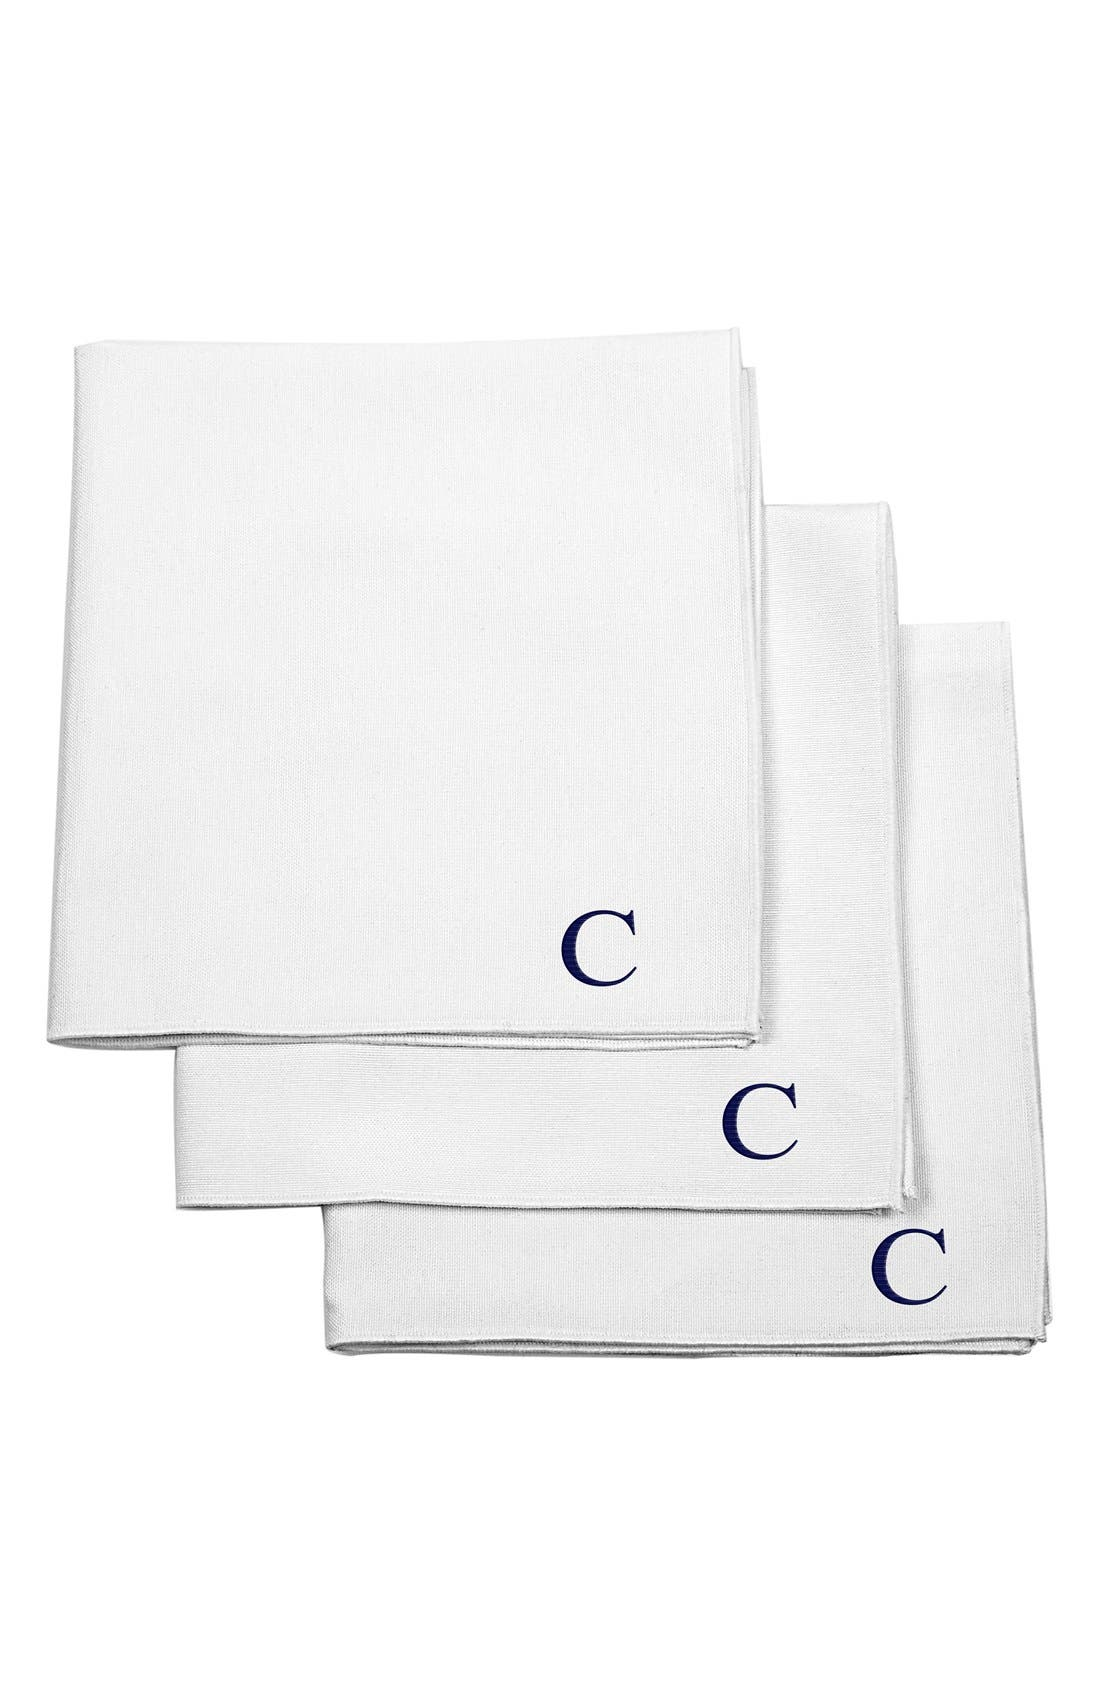 Set of 3 Monogram Cotton Pocket Squares,                             Main thumbnail 1, color,                             C